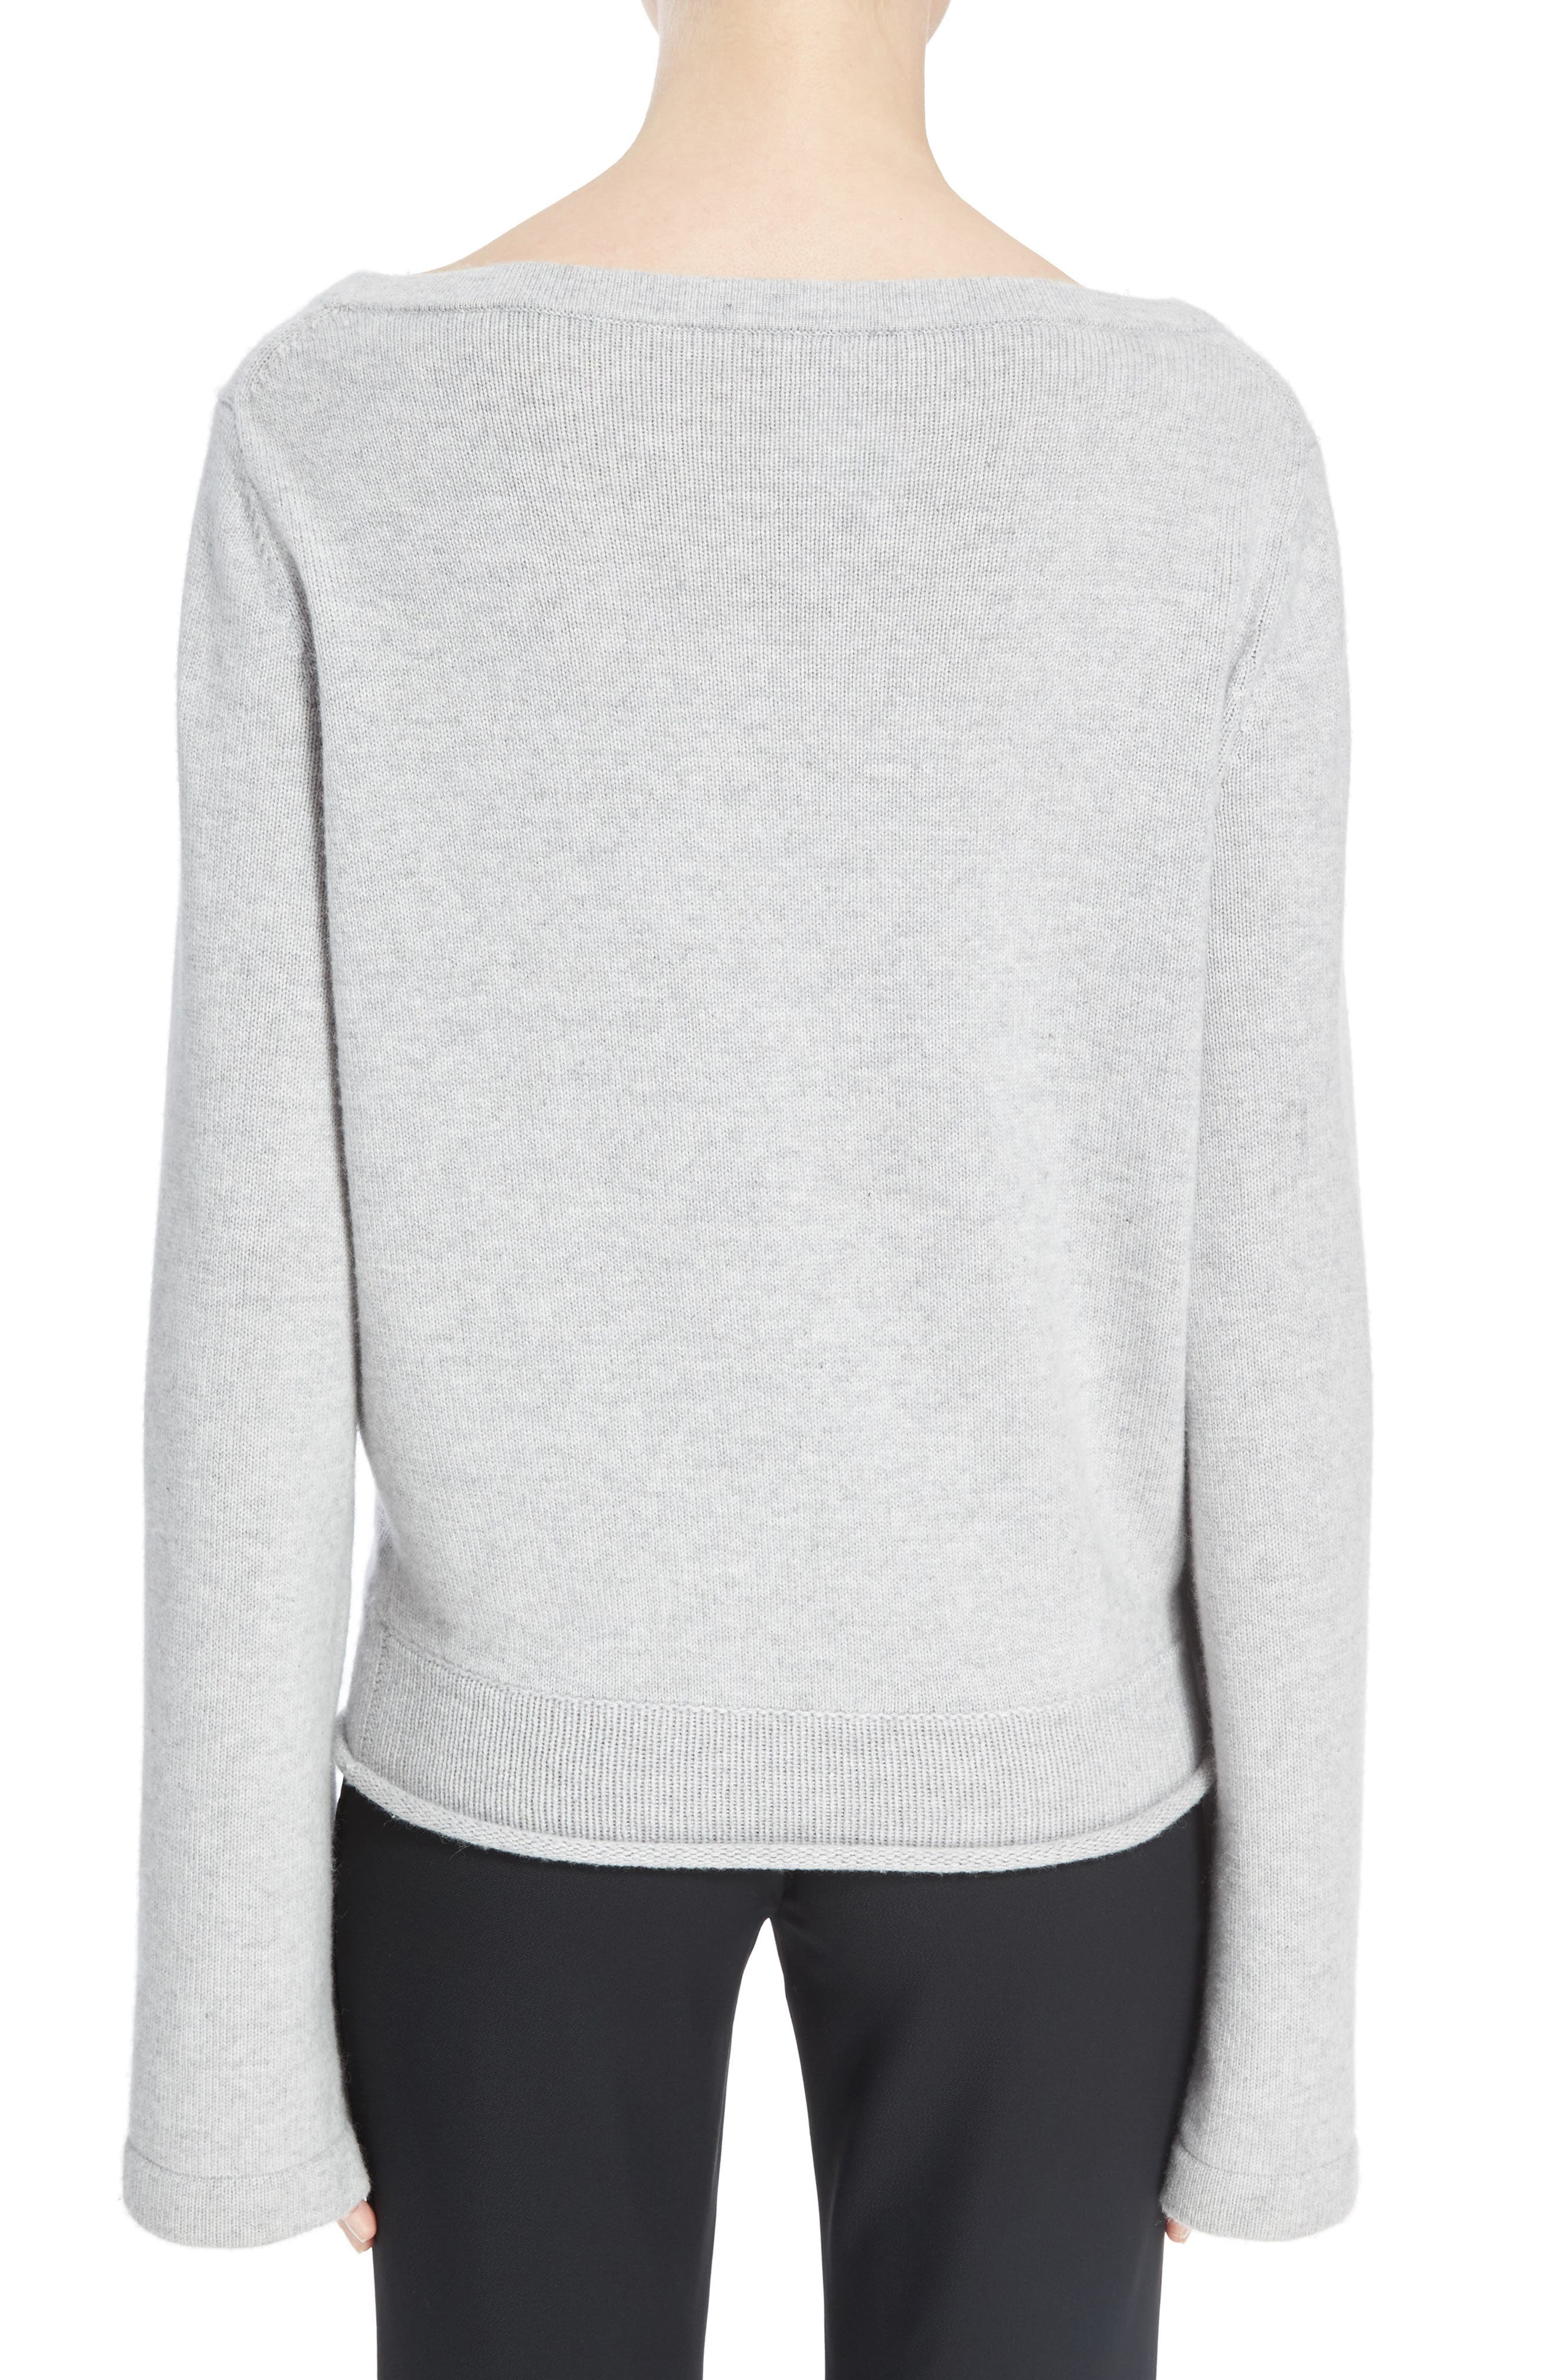 Iconic Cashmere Sweater,                             Alternate thumbnail 2, color,                             Cozy Grey